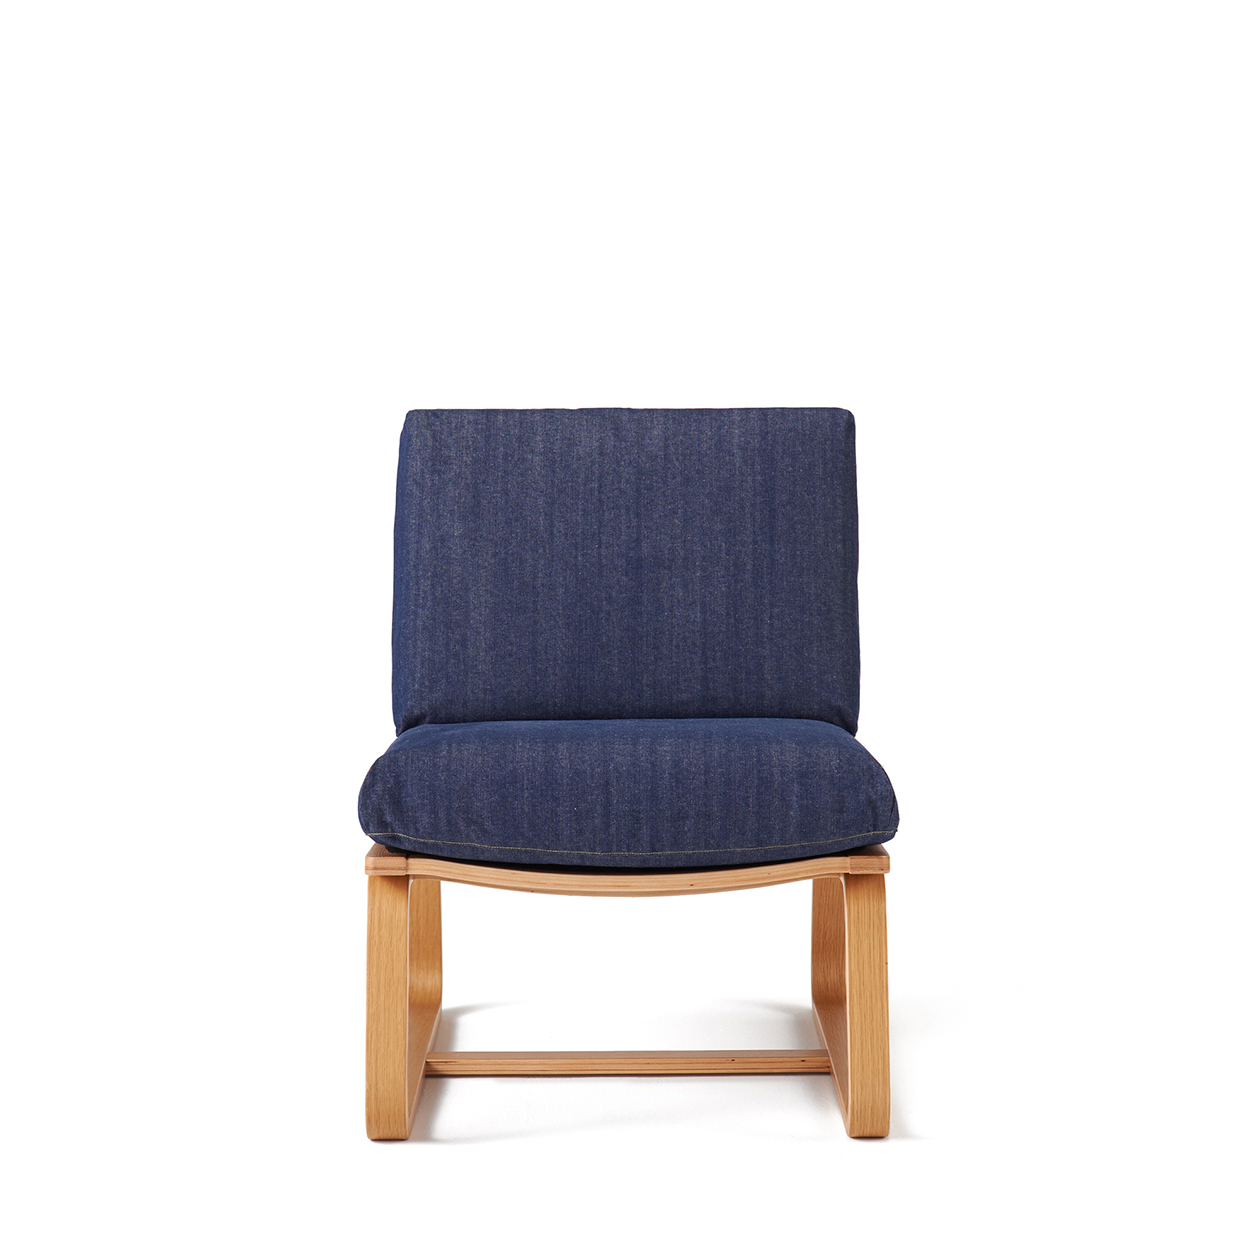 Cover For Chair Cotton Polyester Cover For Living Dining Chair 無印良品 Muji